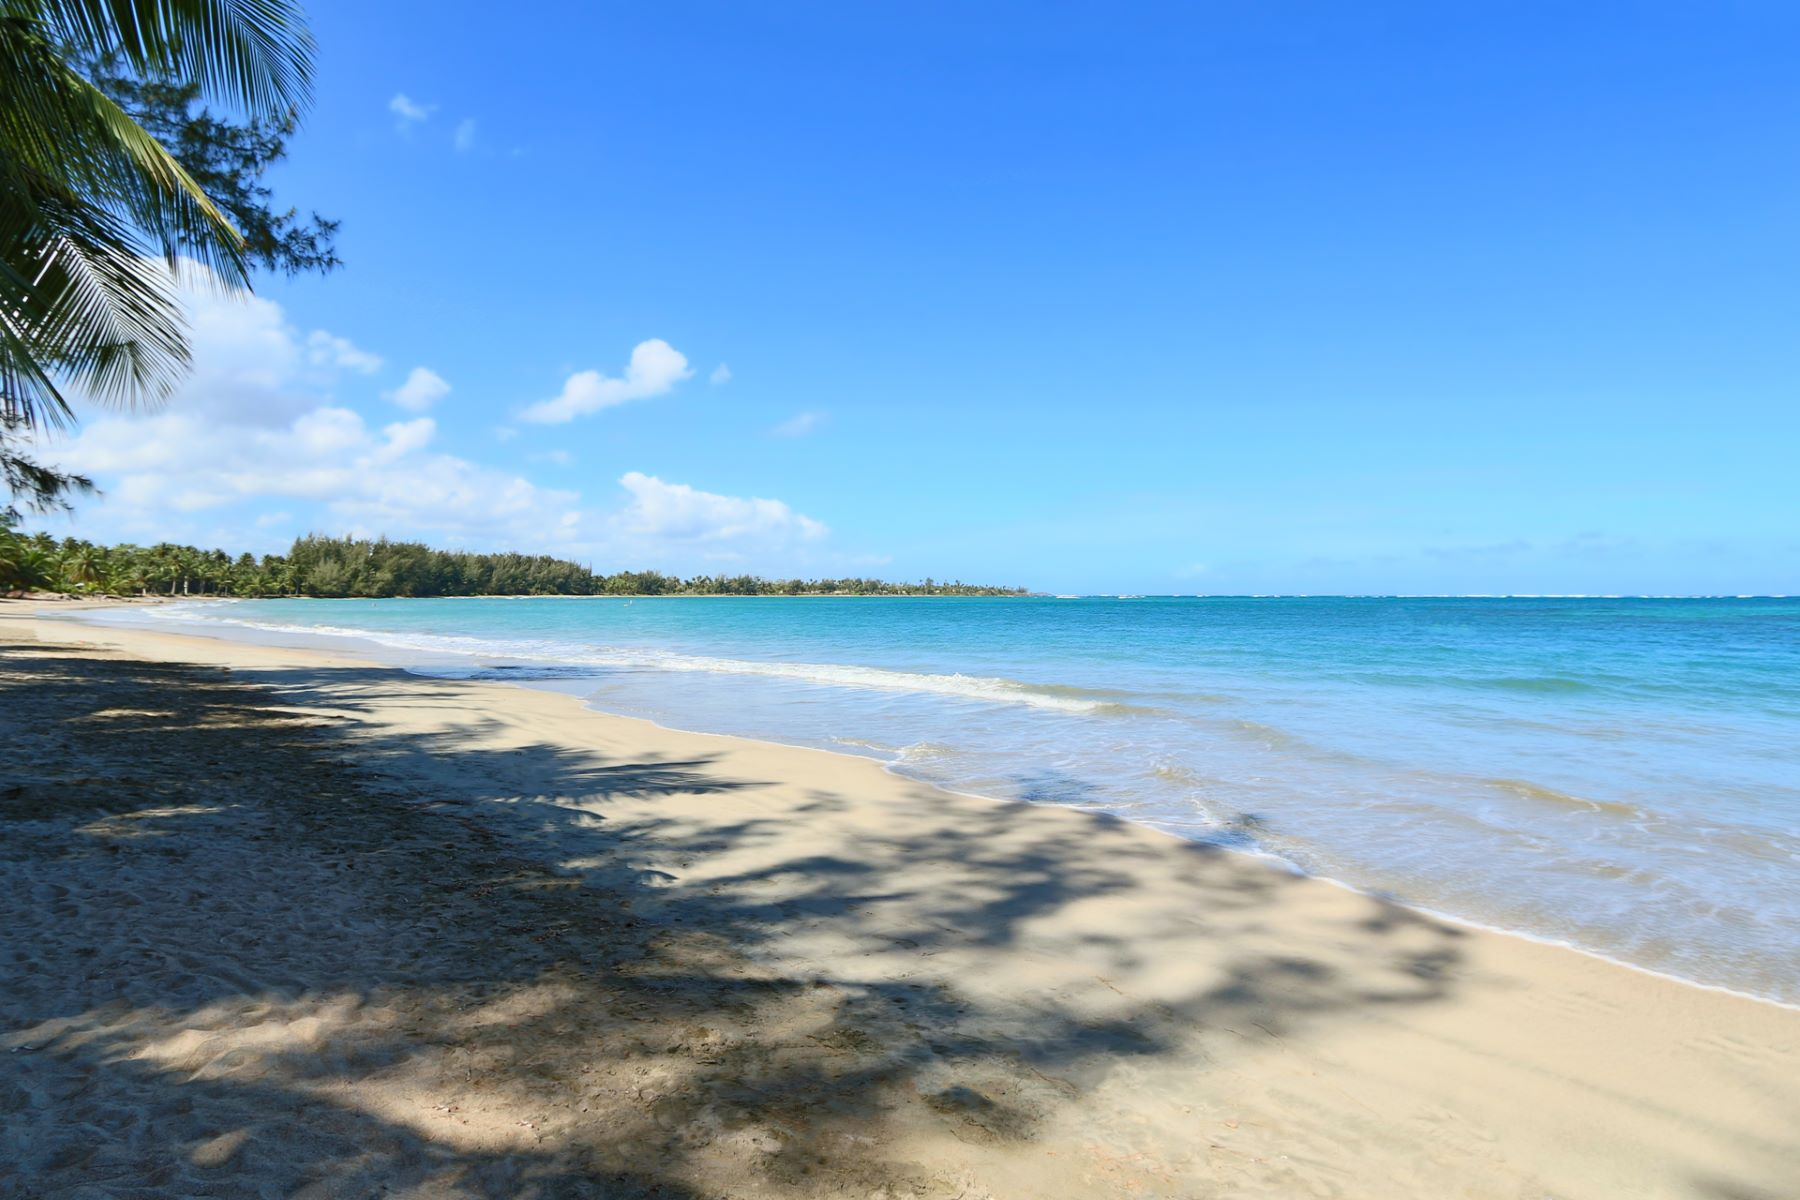 Additional photo for property listing at Beachfront Land at Sardinera, Dorado 52 Sardinera Beach Dorado Beach, Puerto Rico 00646 Пуэрто-Рико